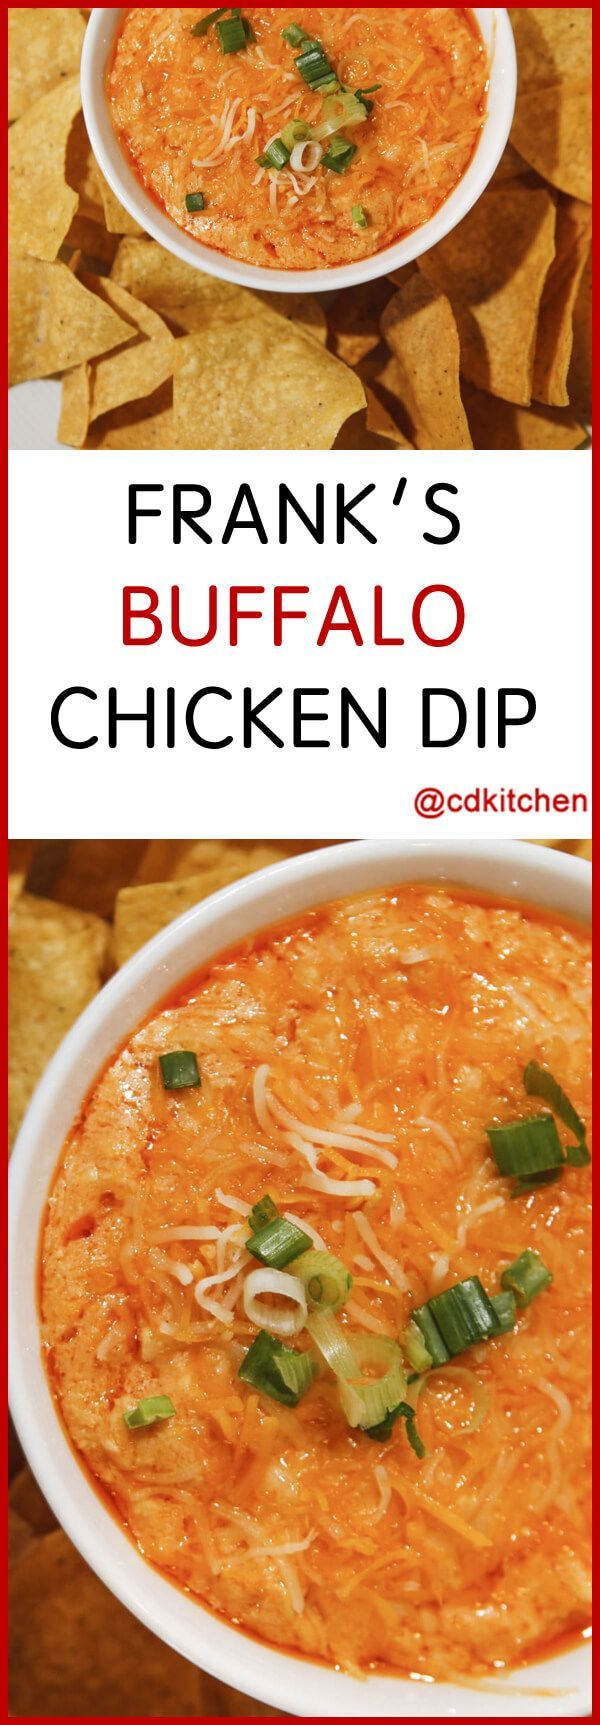 Frank's Buffalo Chicken Dip - Inspired by the famous spicy buffalo wings, this dip incorporates chicken and hot sauce into a warm, creamy, cheesy dip.| CDKitchen.com